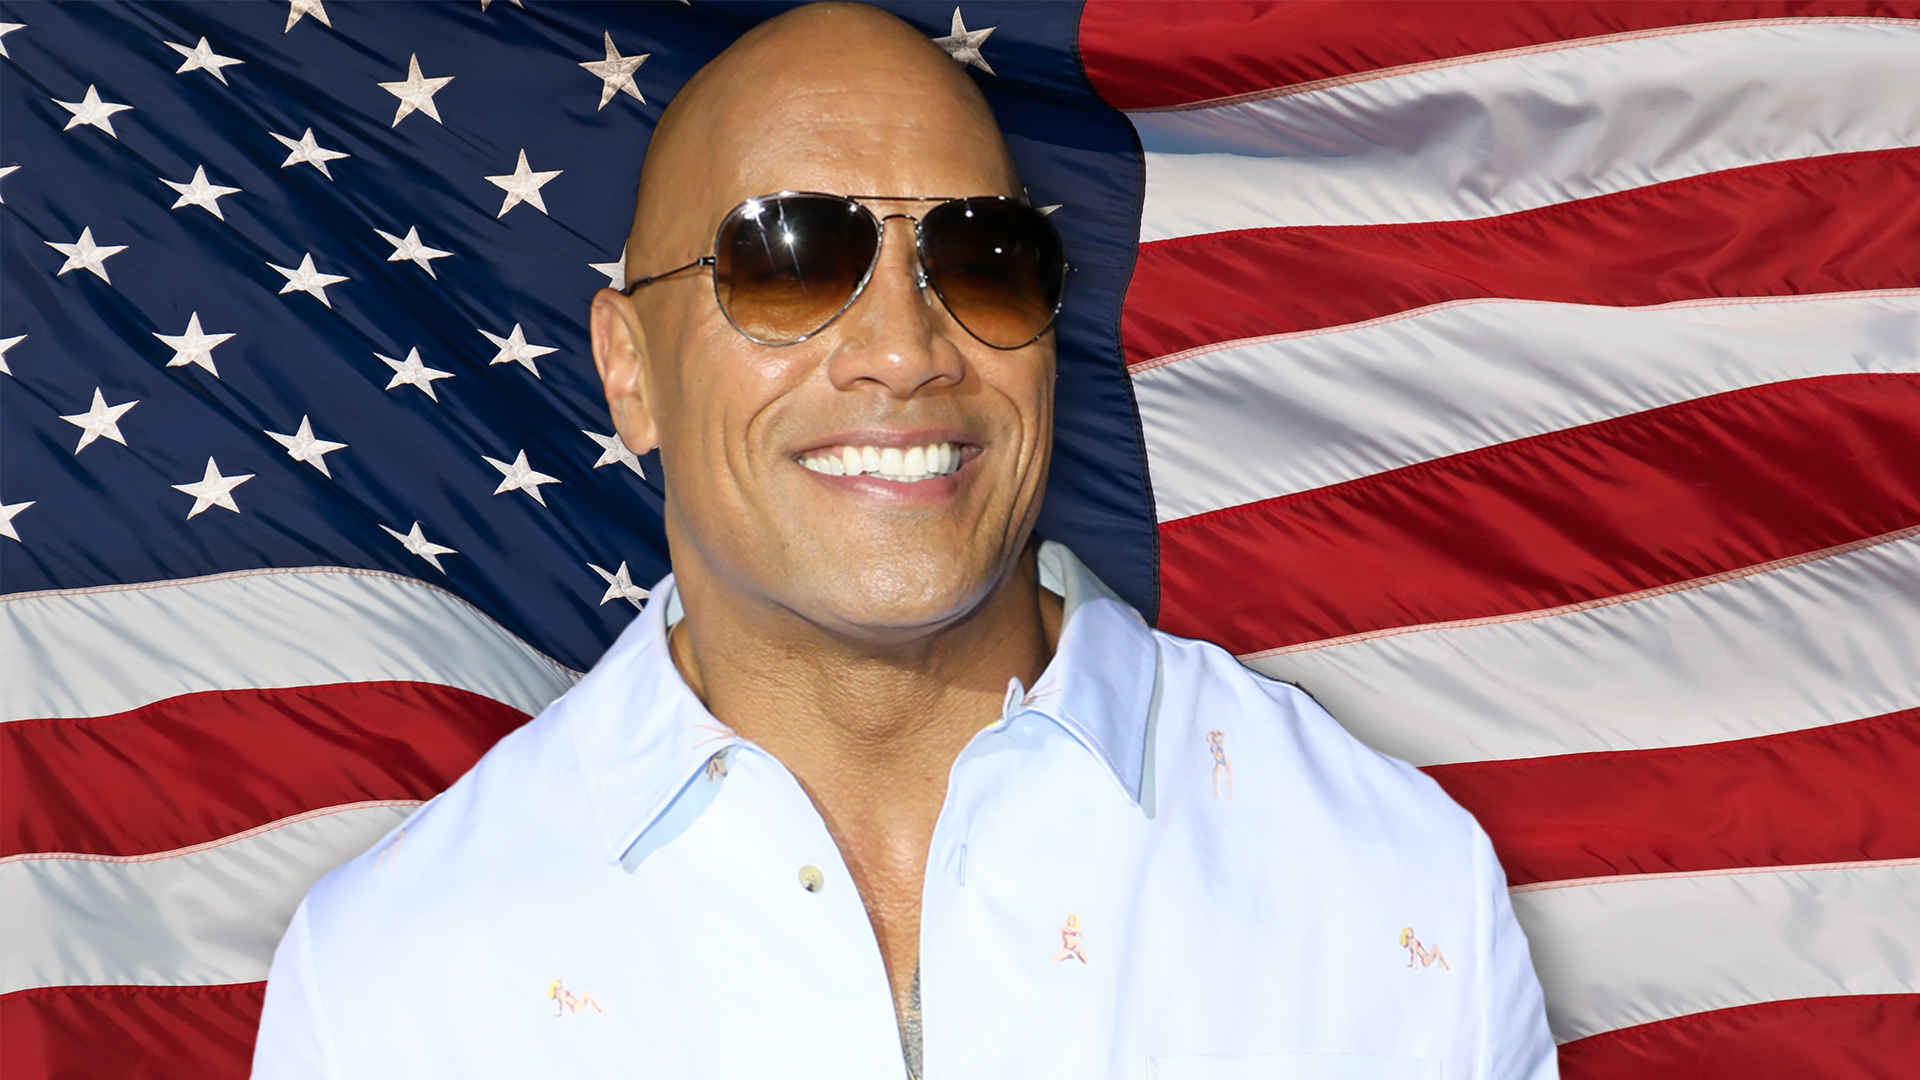 Trump Oval Office Pictures Dwayne The Rock Johnson Opens Up About Possible